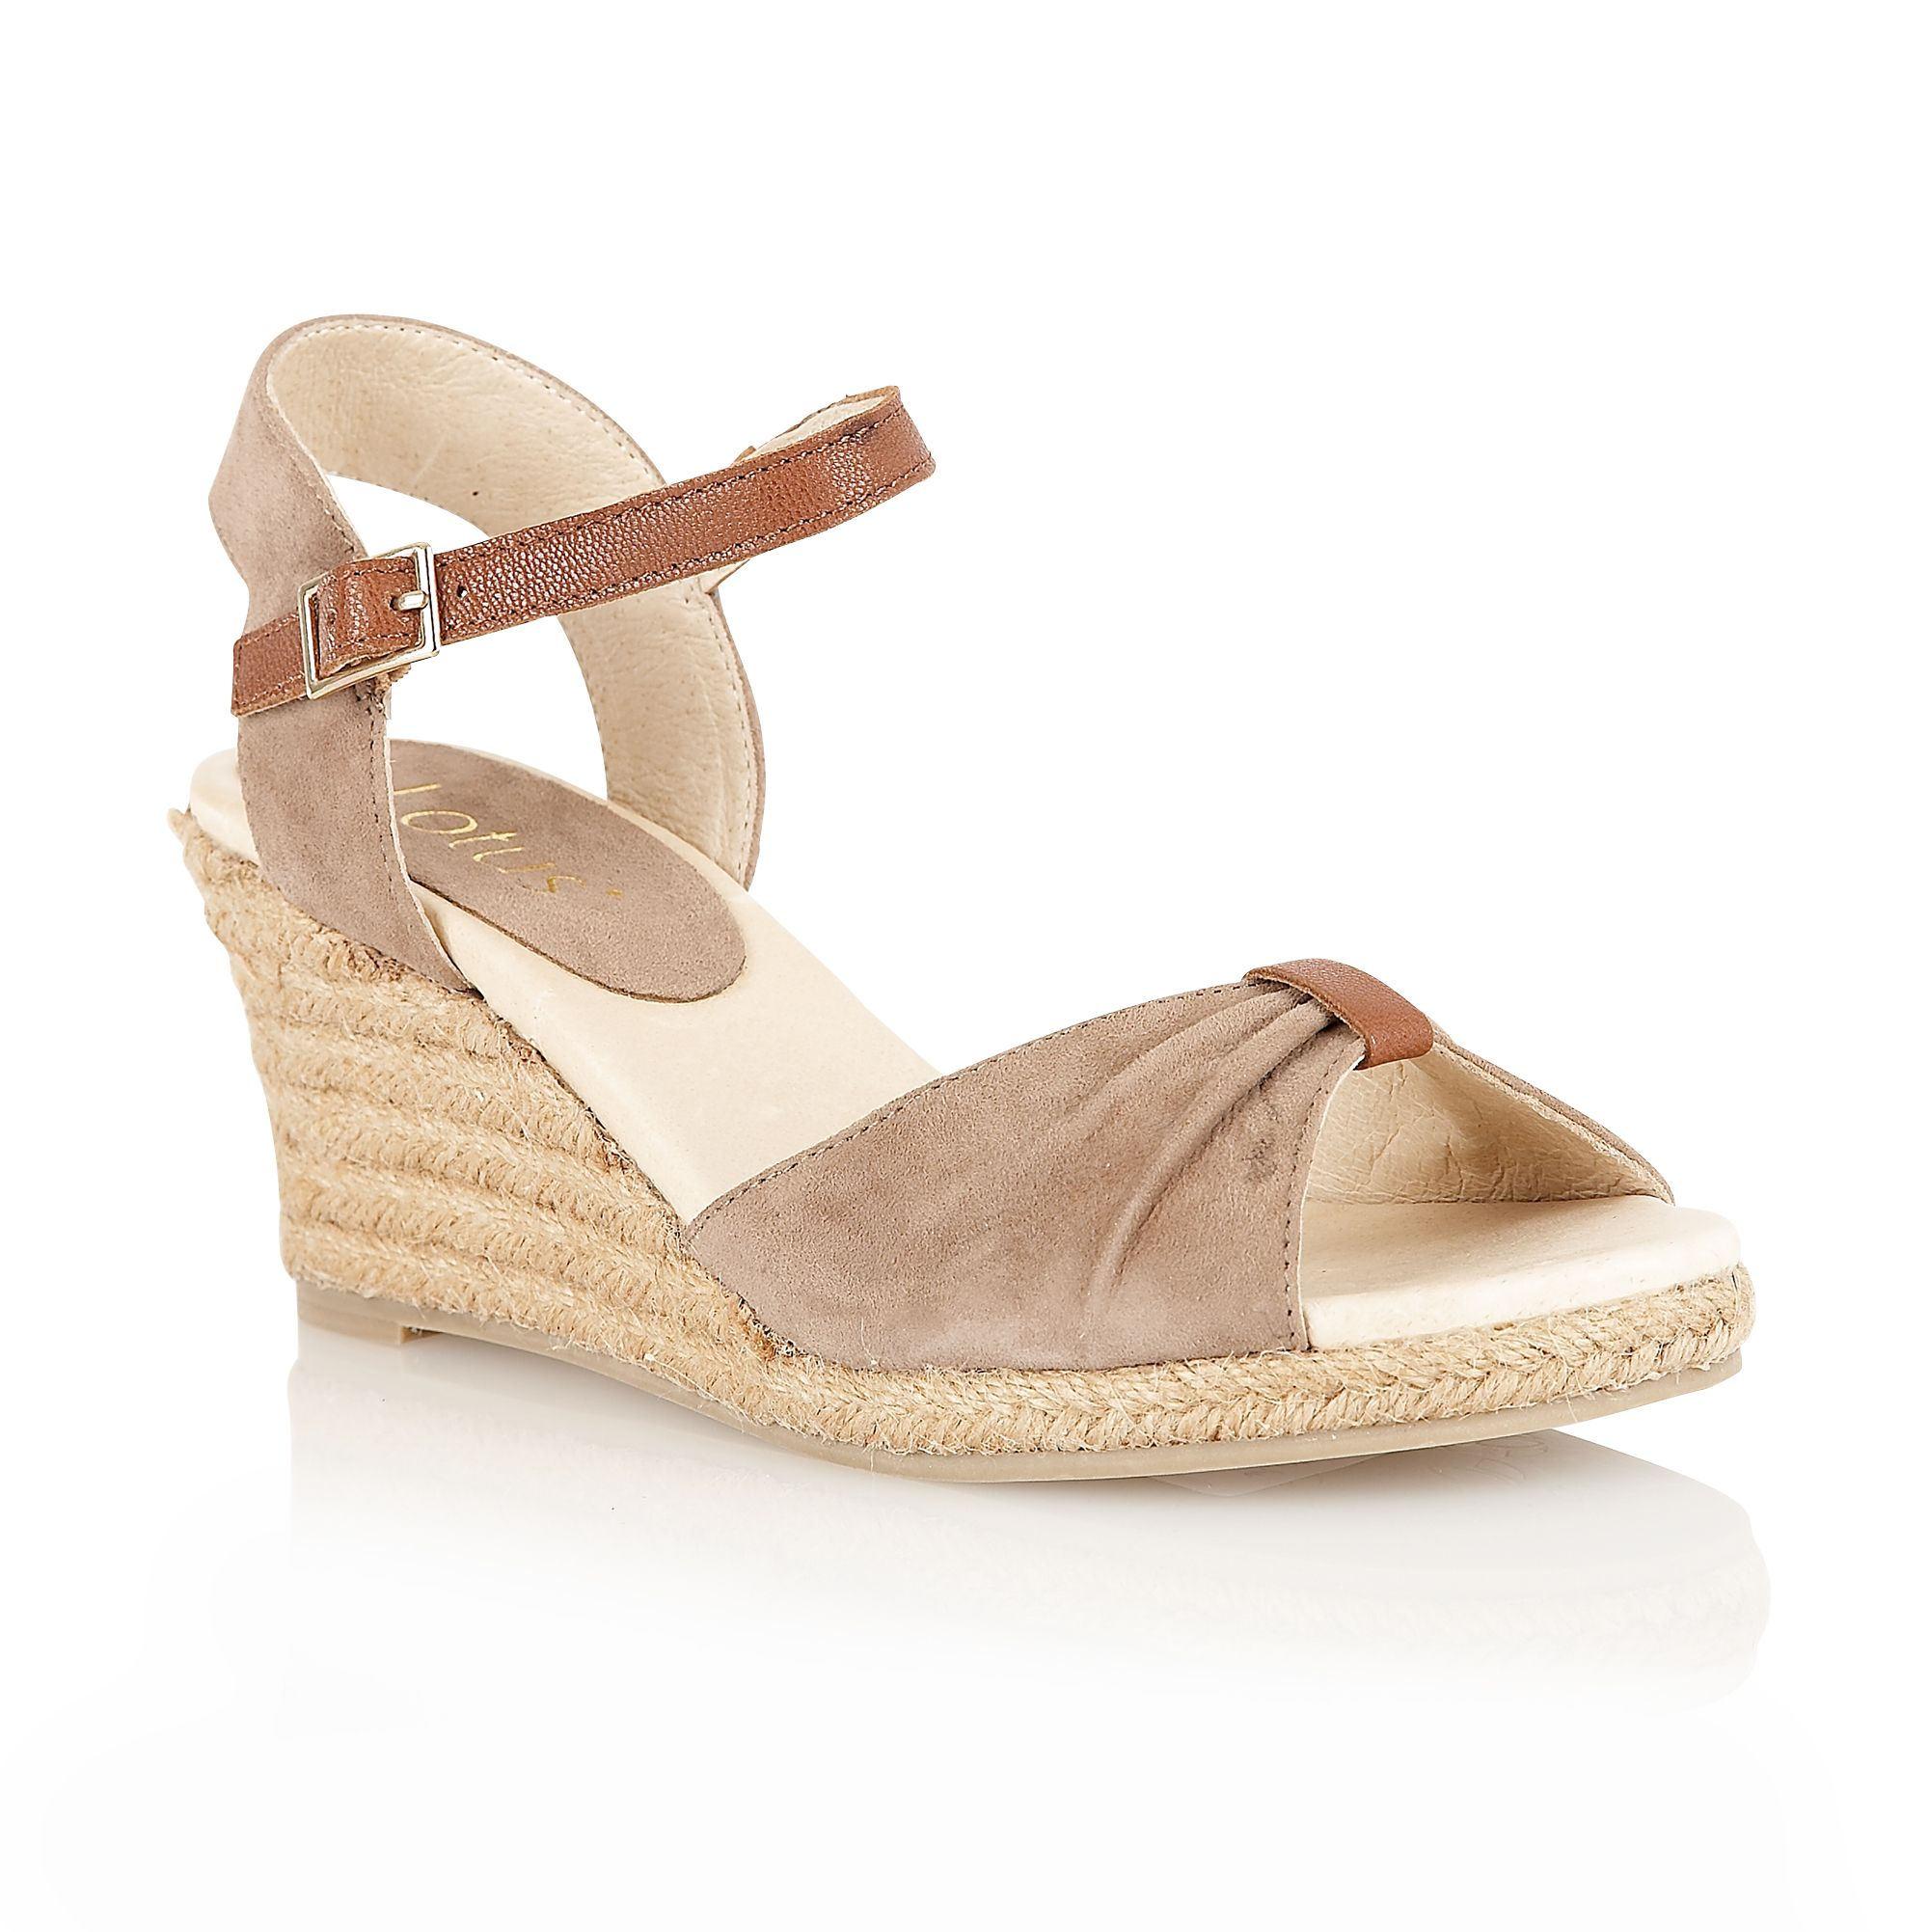 Avoca casual sandals